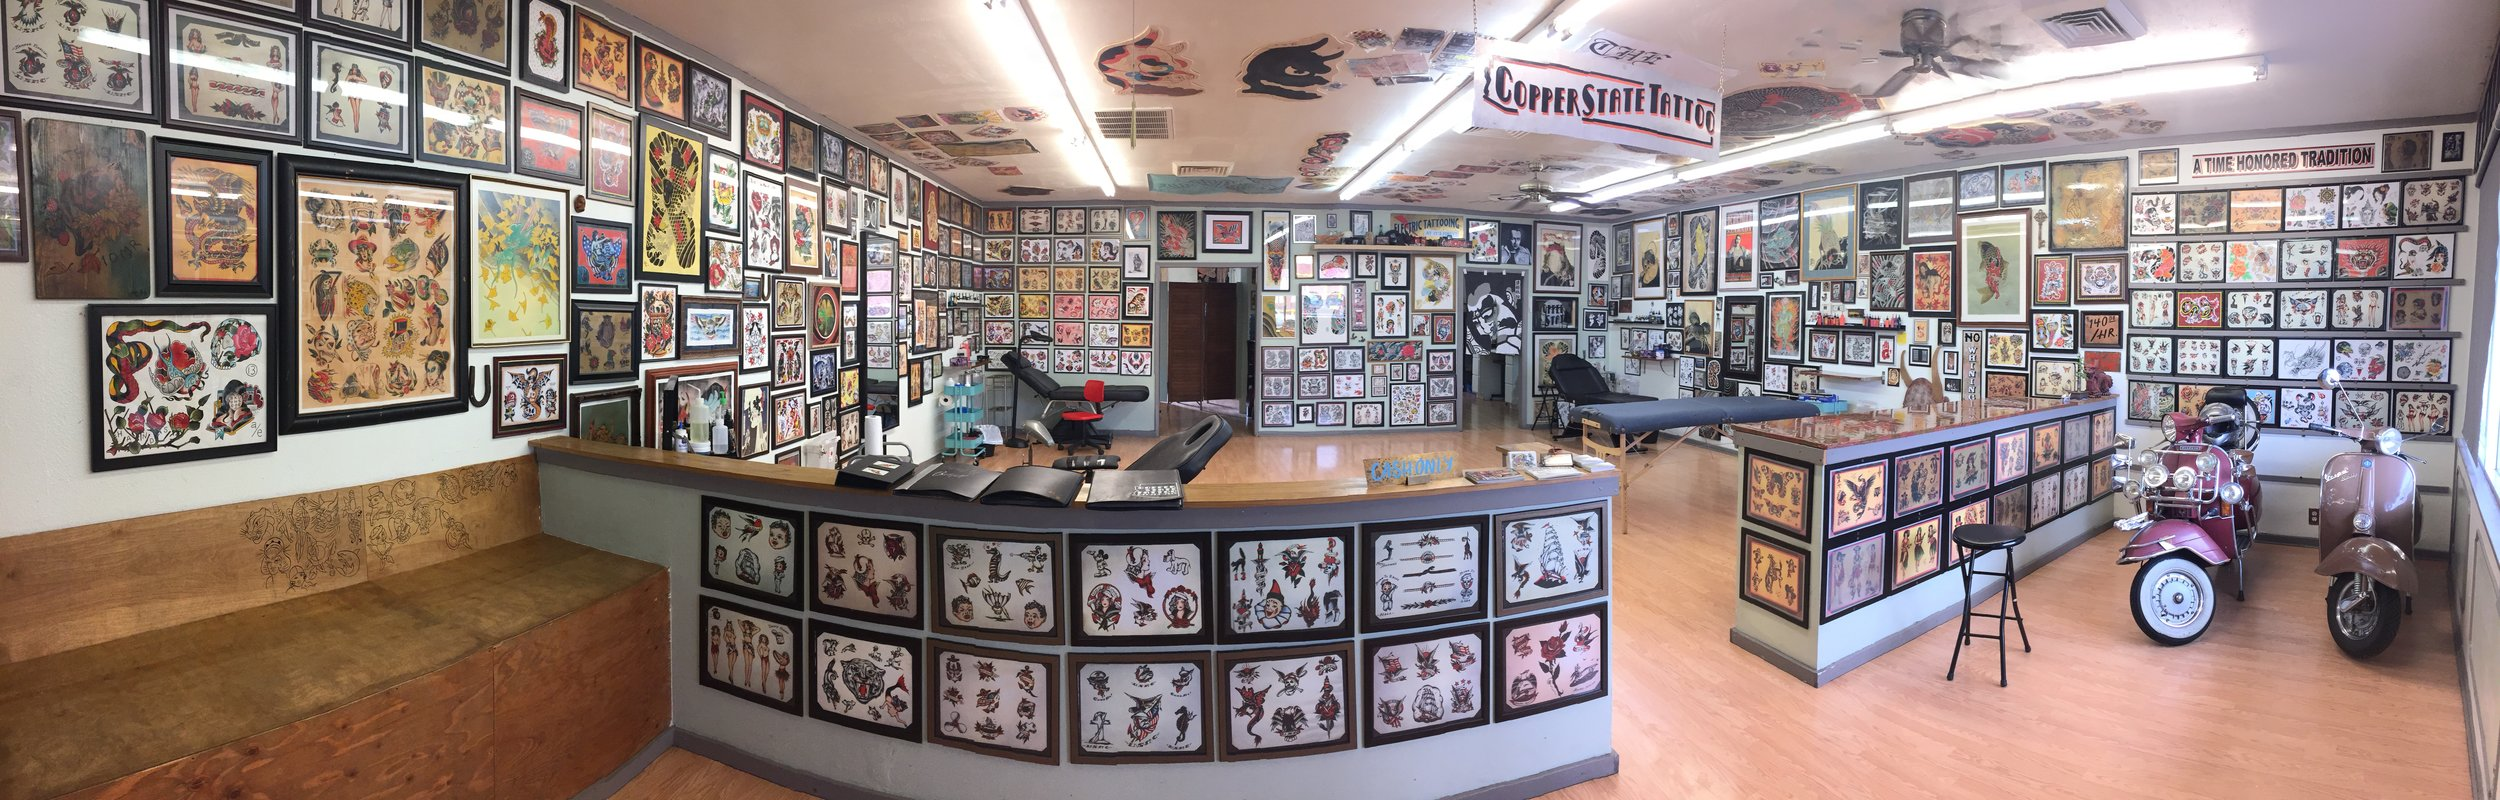 copperstatetattooshop